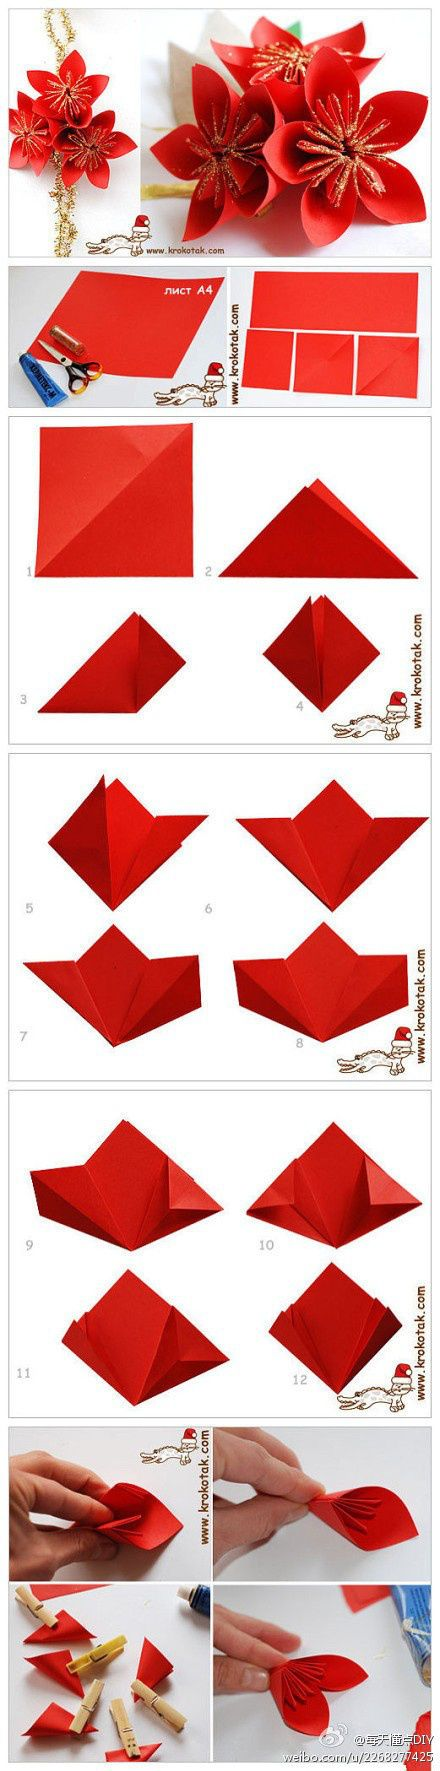 Origami Christmas Flower Instructions Origami Tutorial Lets Make It